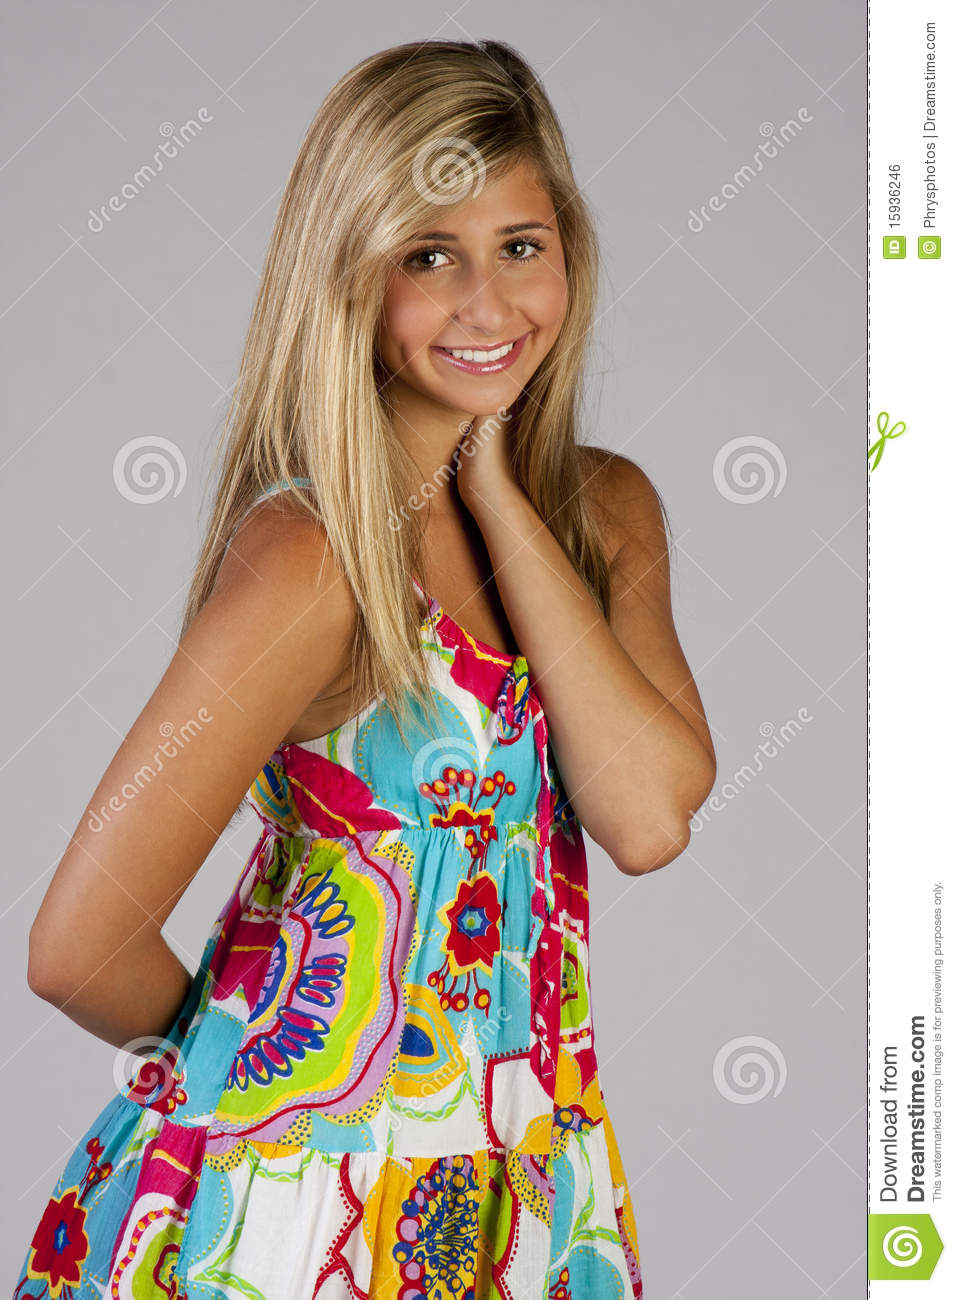 Pretty Girls That Make The World A Little More Beautiful: Pretty Girl In Party Dress Stock Photo. Image Of Youth